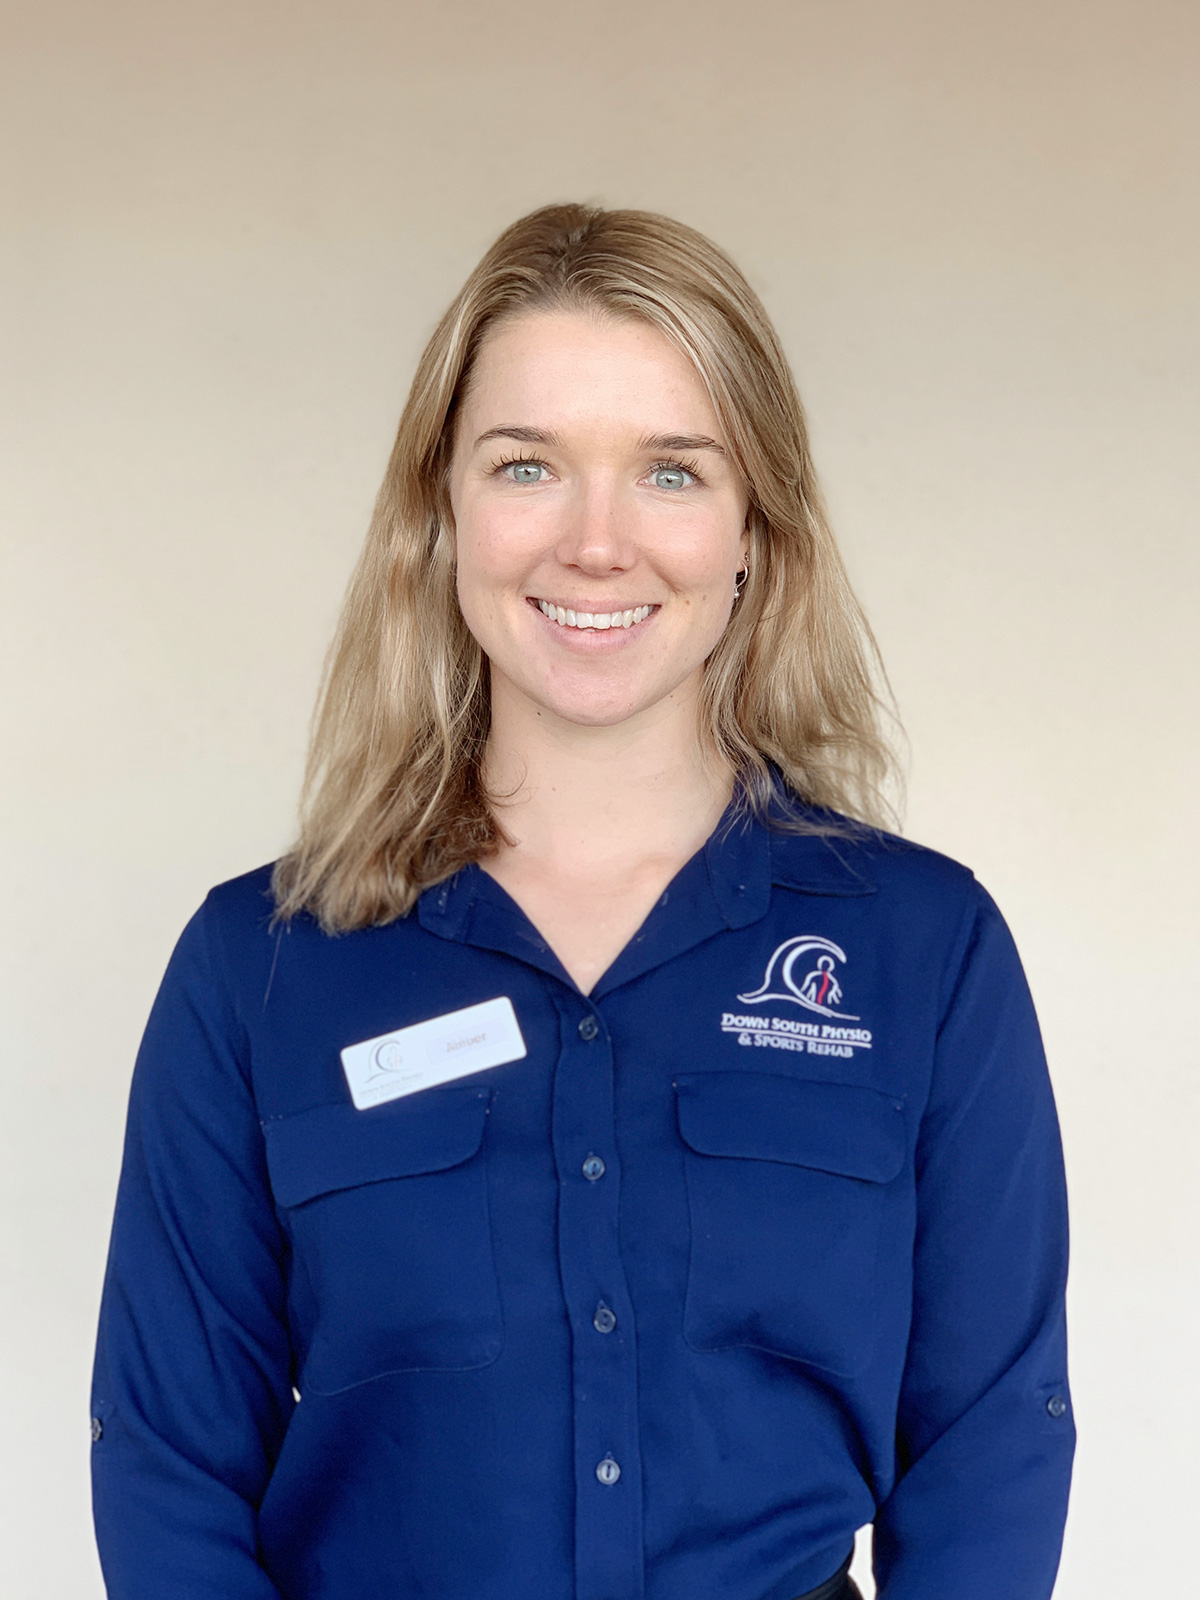 Amber - Down South Physio & Sports Rehab offers Physiotherapy, Sports Rehab, Physio Rehab and Continence and Women's Health Physiotherapy.